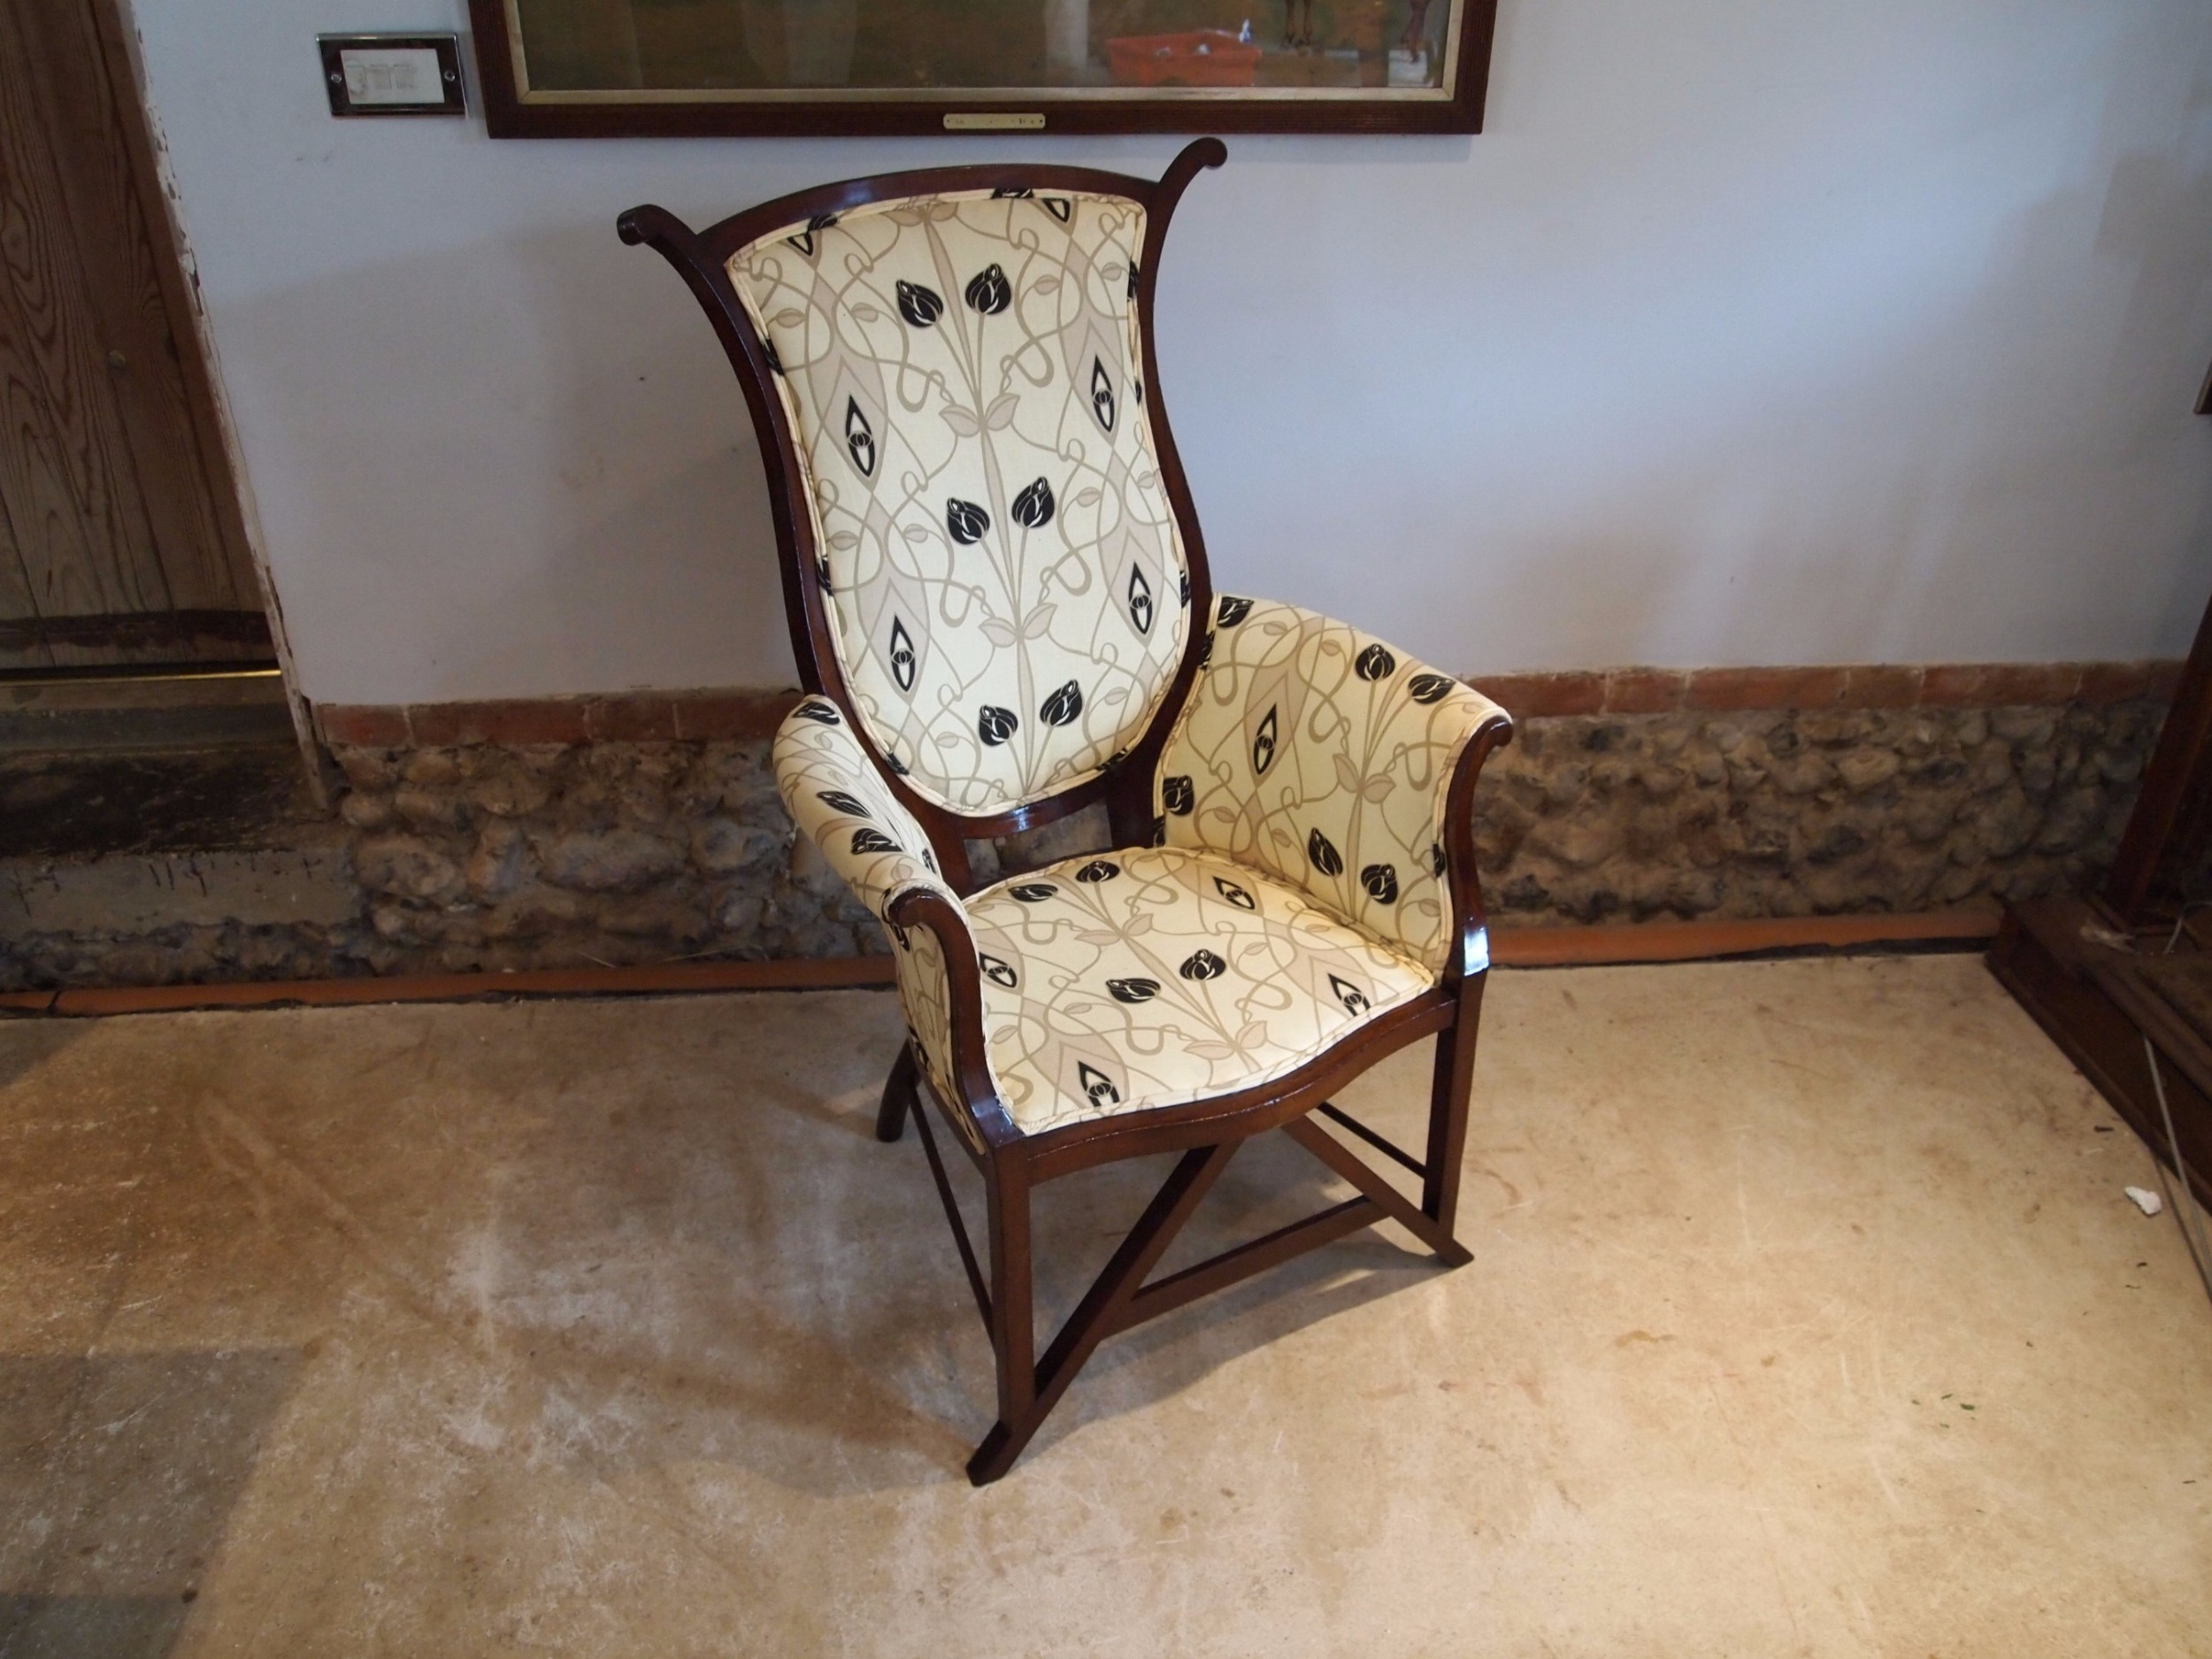 Captivating Cloverleaf Home Interiors Chair Arts And Crafts Art Nouveau Mahogany Chair  C1900 491608100 Cloverleaf Home Interiors 148 Best Interior Decor Part 19